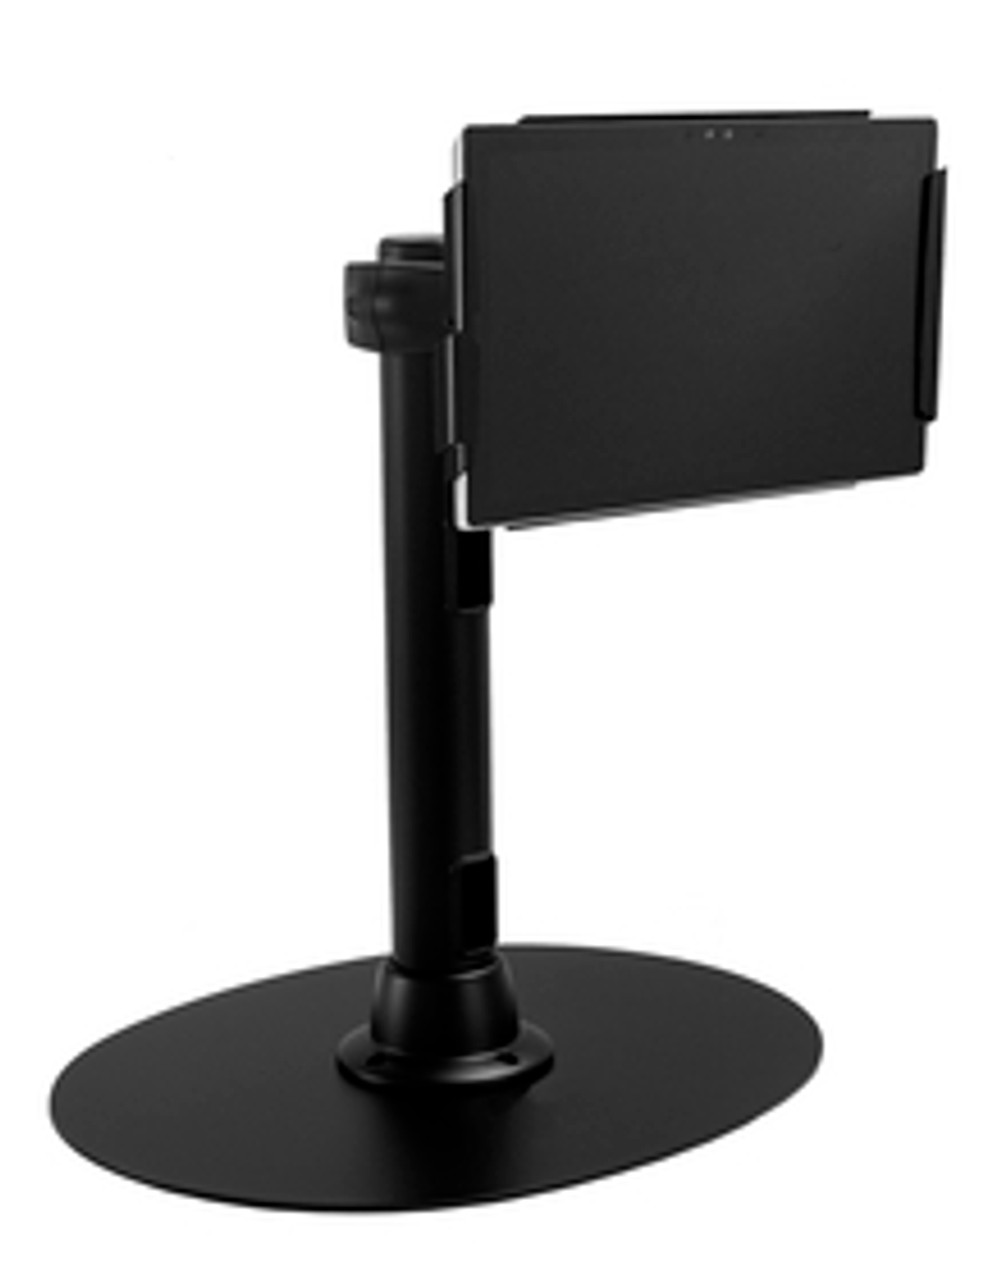 POS Microsoft Surface 3 Preconfigured Mount And Stand